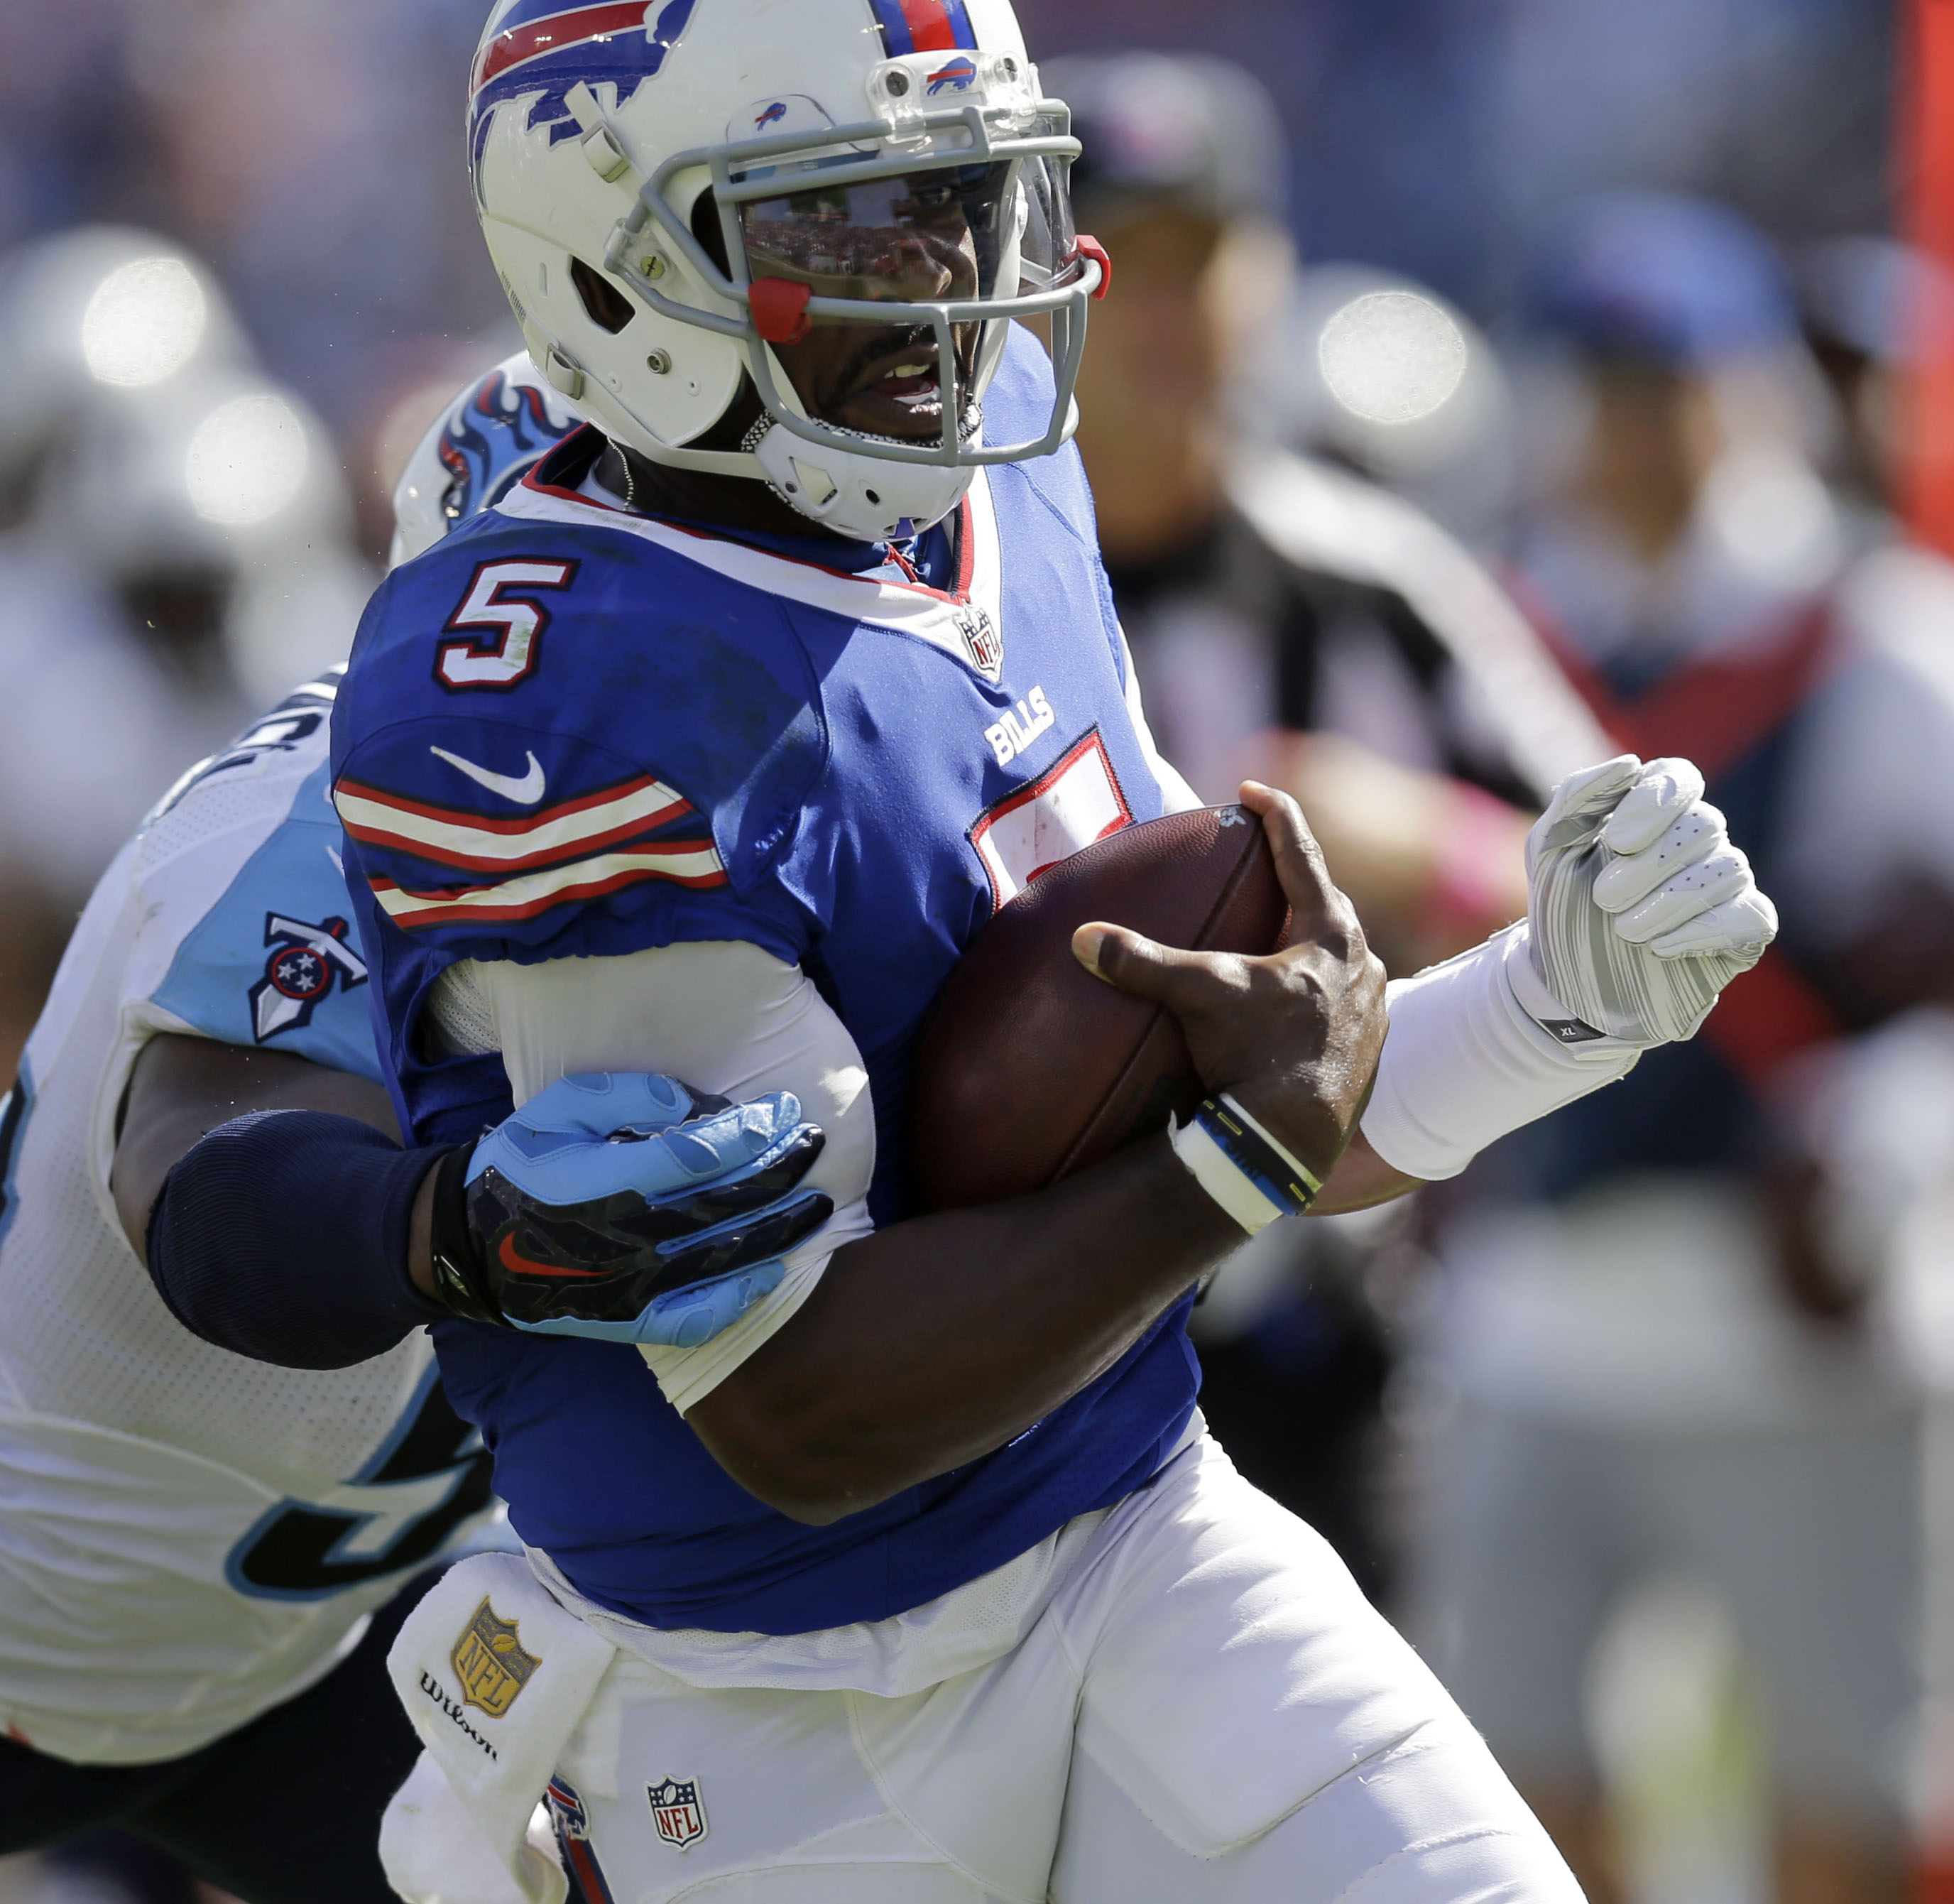 Buffalo Bills quarterback Tyrod Taylor (5) carries for a touchdown in the second half of an NFL football game against the Tennessee Titans, Sunday, Oct. 11, 2015, in Nashville, Tenn. (AP Photo/James Kenney)